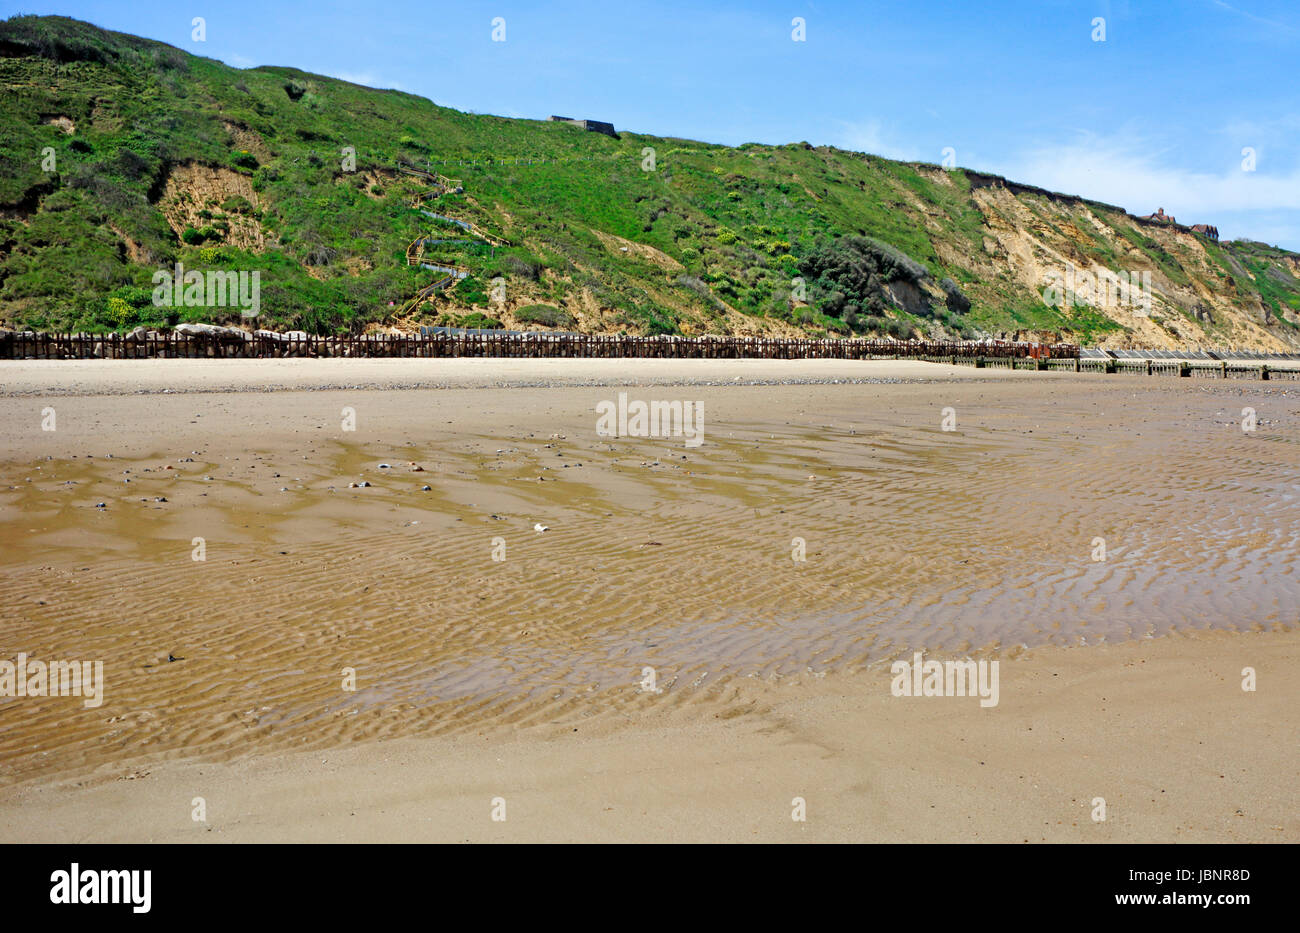 A view of the west beach and cliffs on the North Norfolk coast at Mundesley-on-Sea, Norfolk, England, United Kingdom. - Stock Image